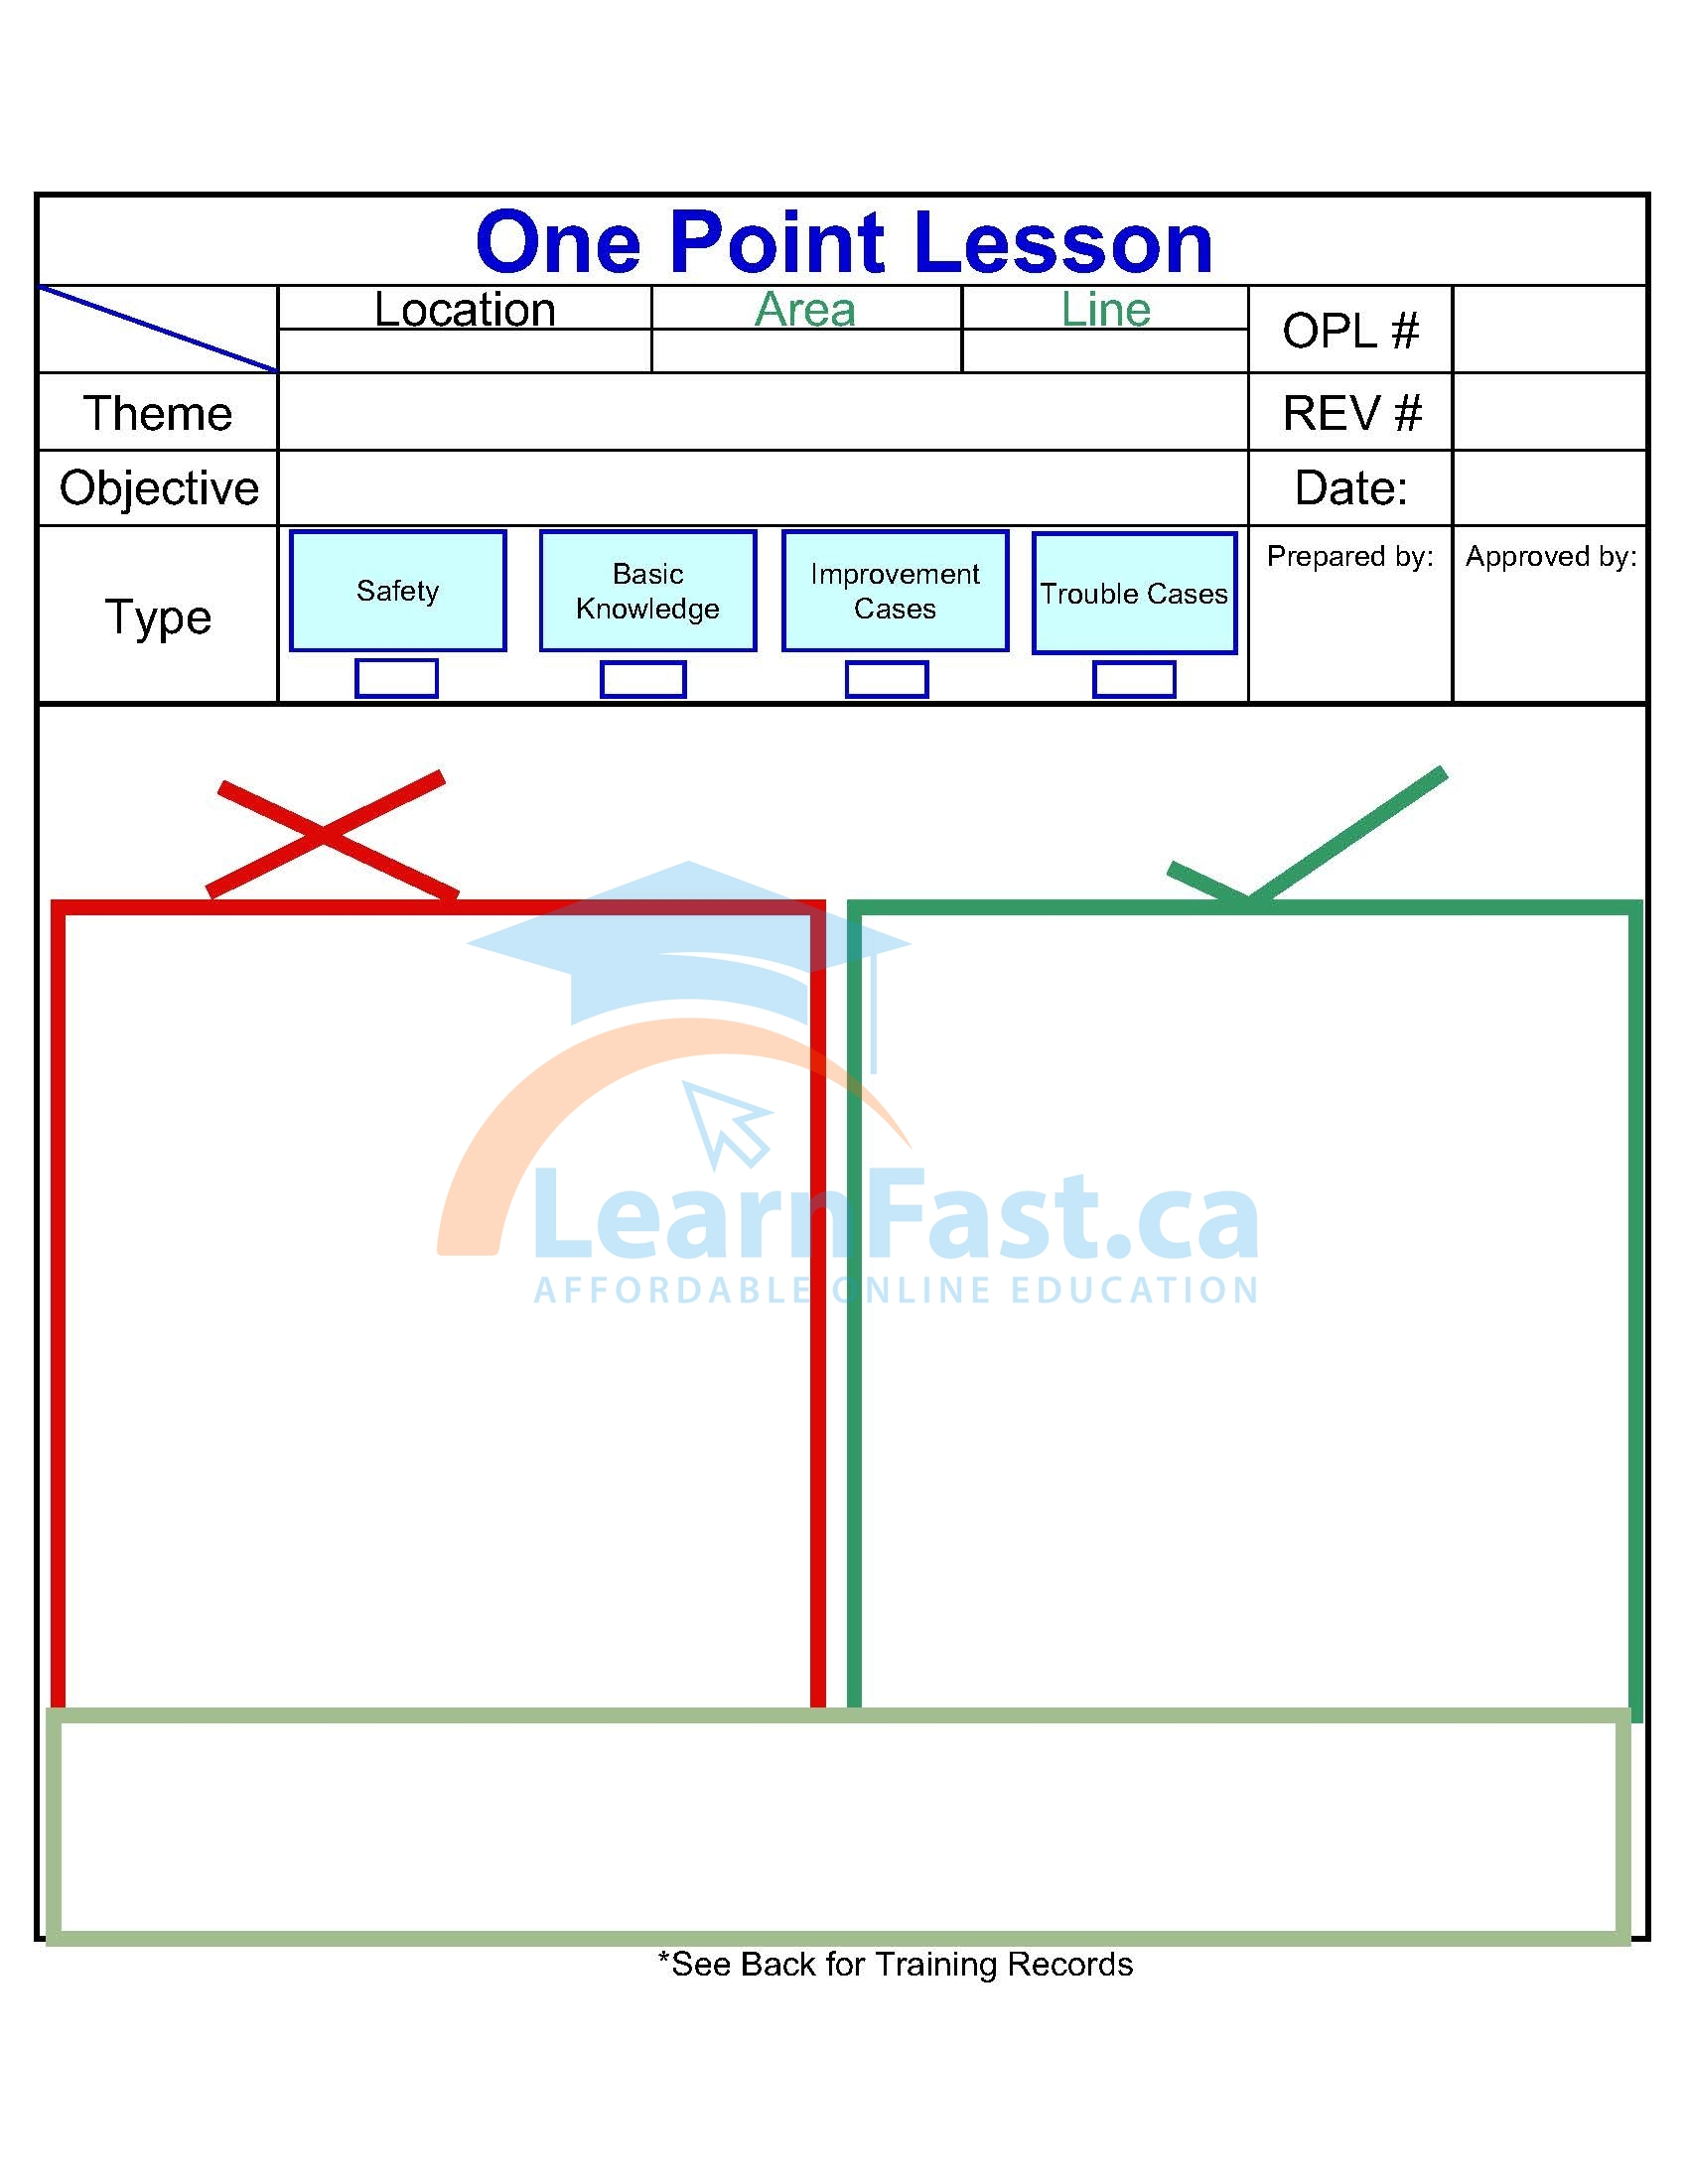 What Are One Point Lessons Continuously Improving Manufacturing